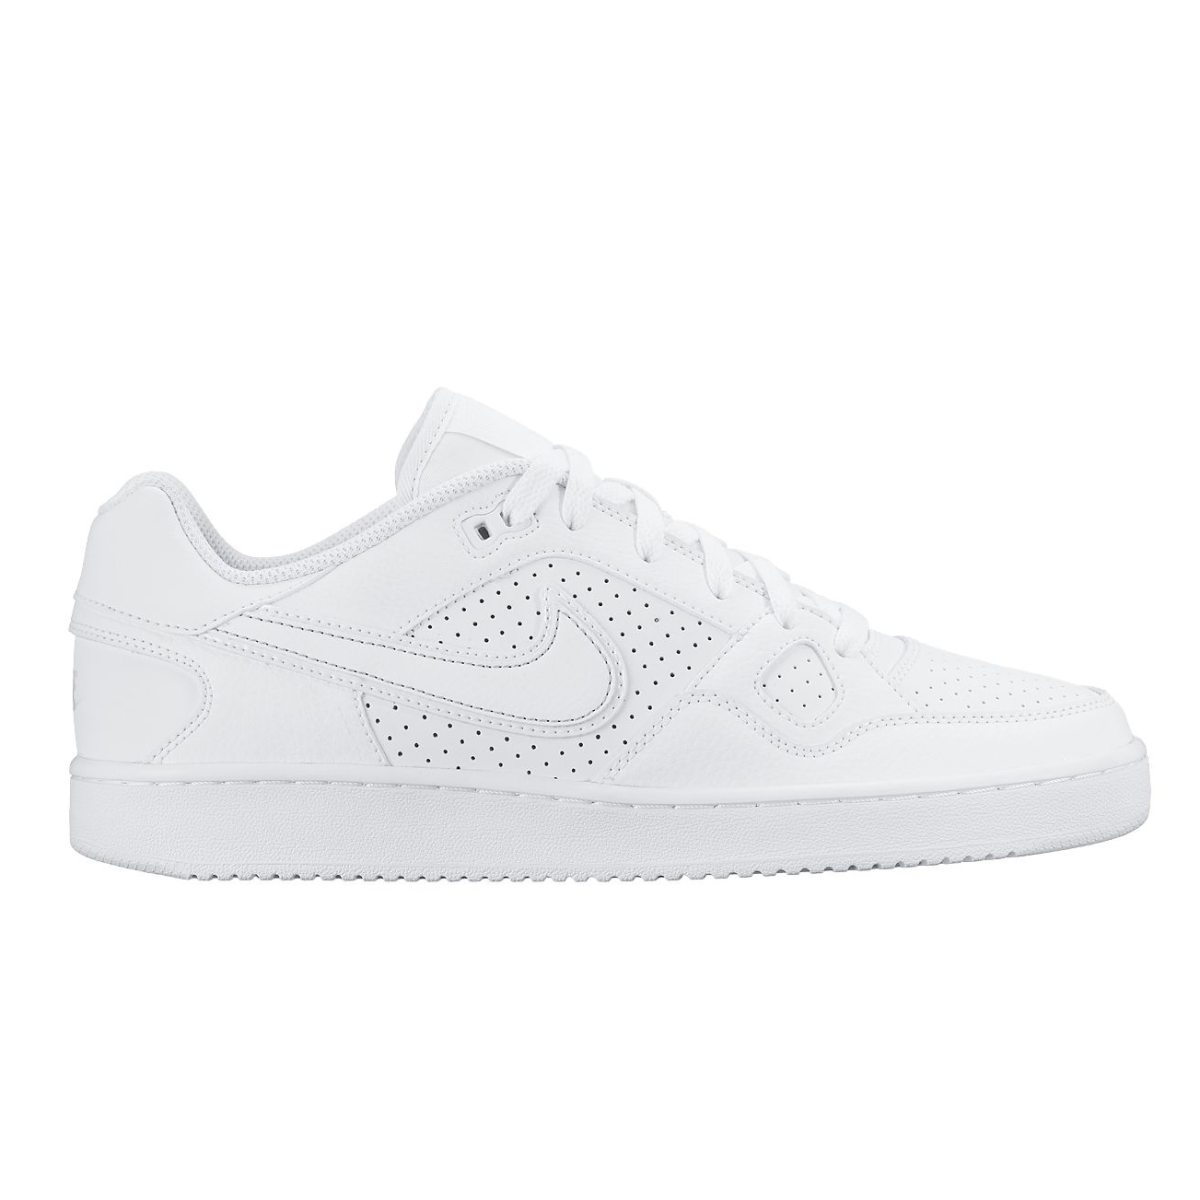 separation shoes 682cd 55e87 grå nike son of force mns white wolf gre fritidsskor   sneakers herr